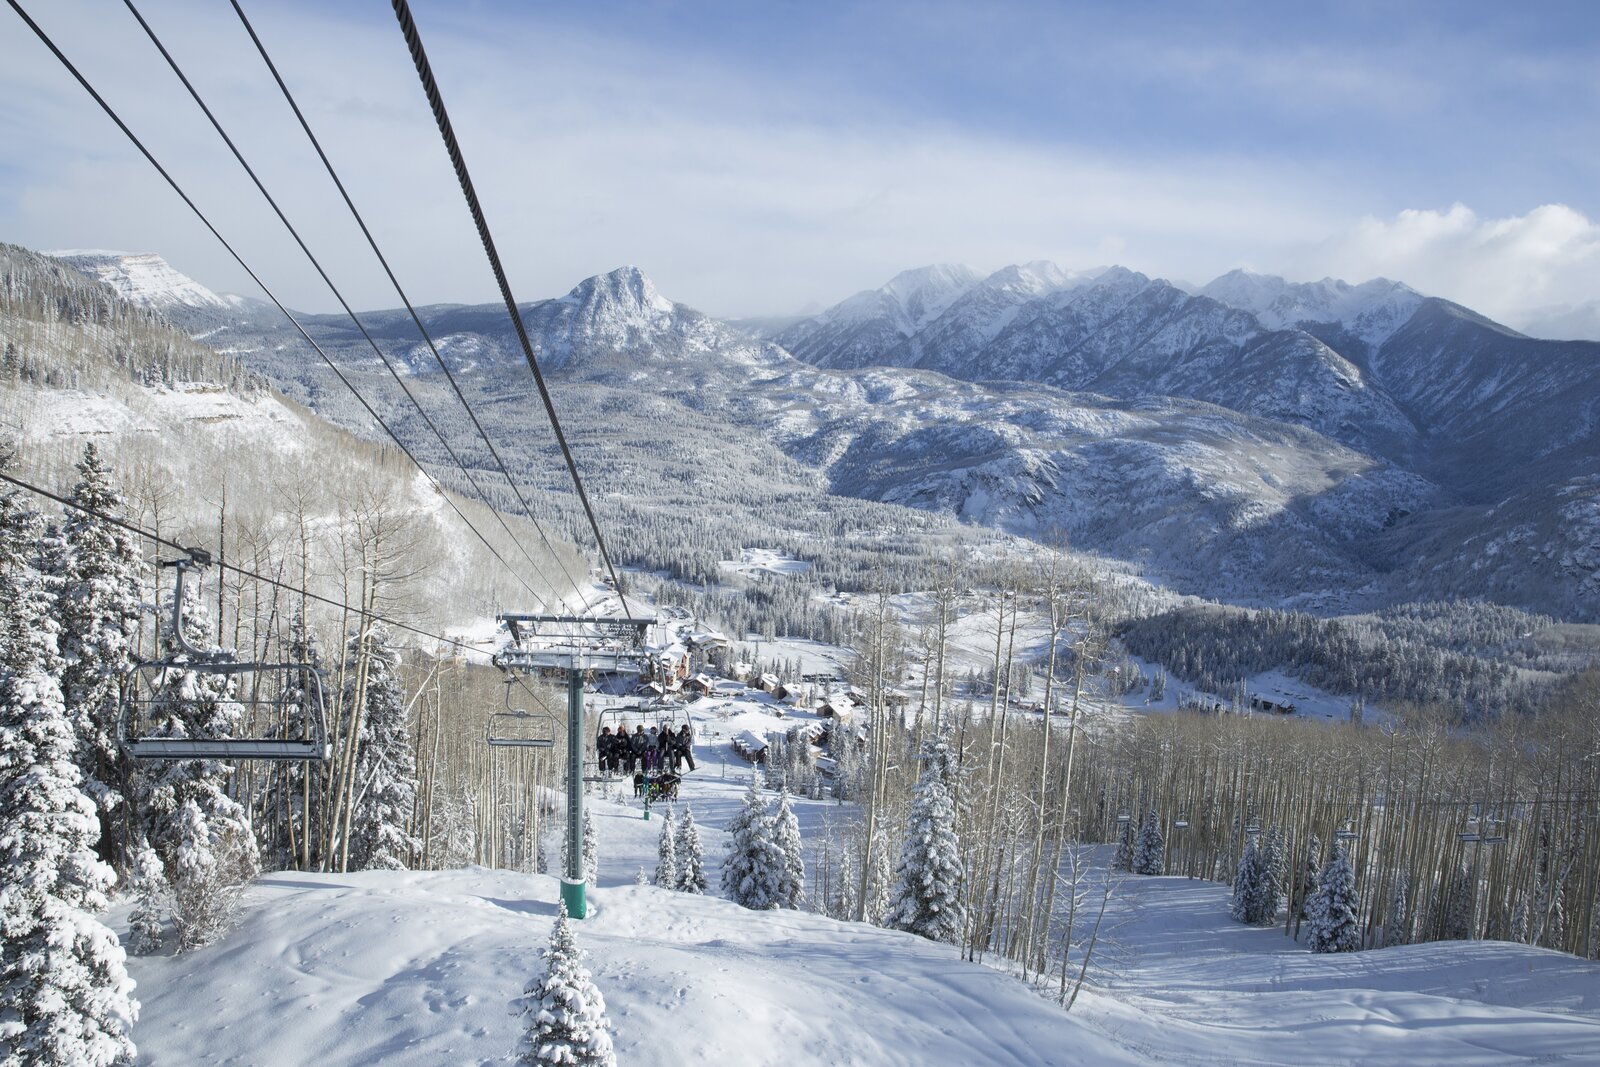 Snow covered mountains and lanscape are visible from the chair lift at Purgatory Resort in Colorado.